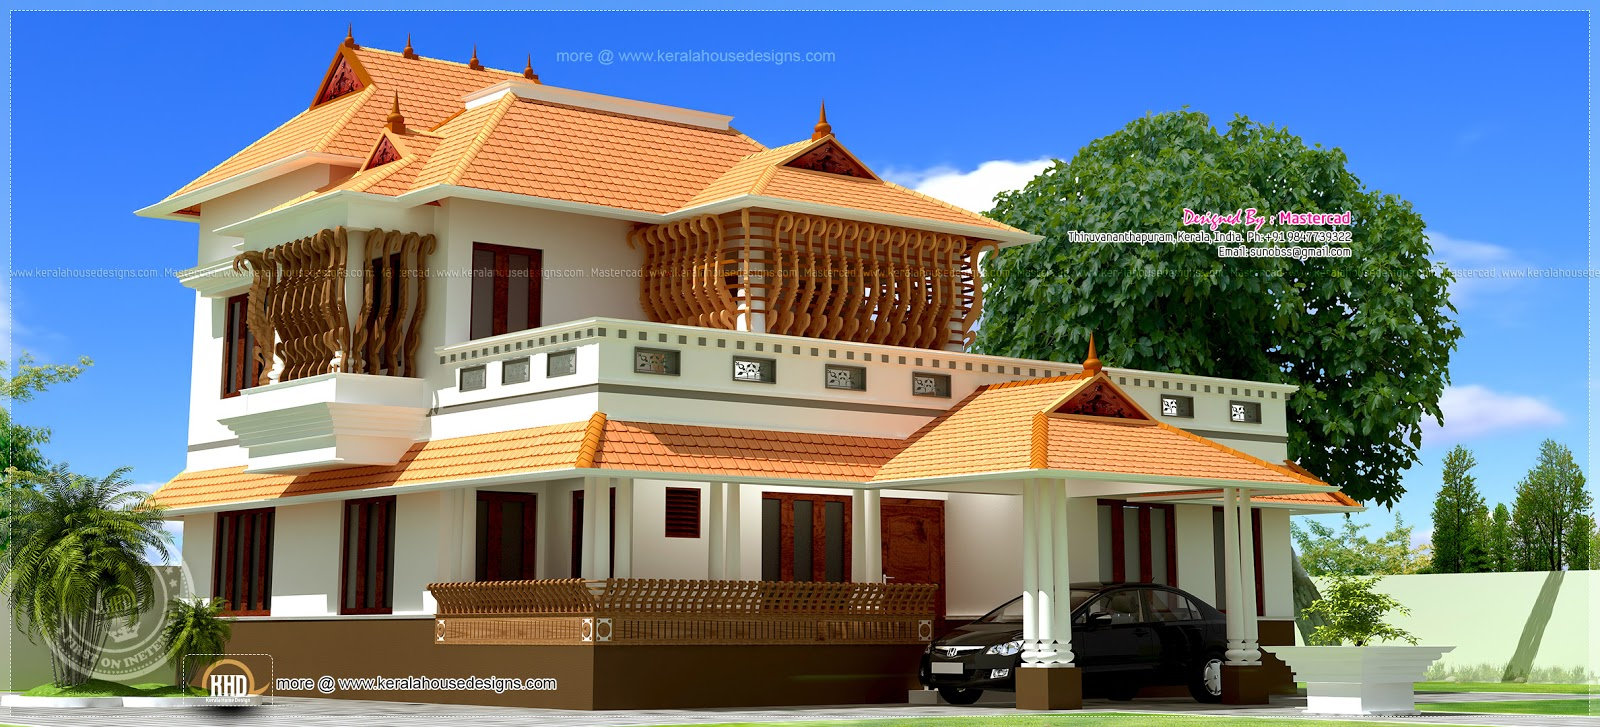 Kerala house design photo gallery joy studio design for Home designs traditional